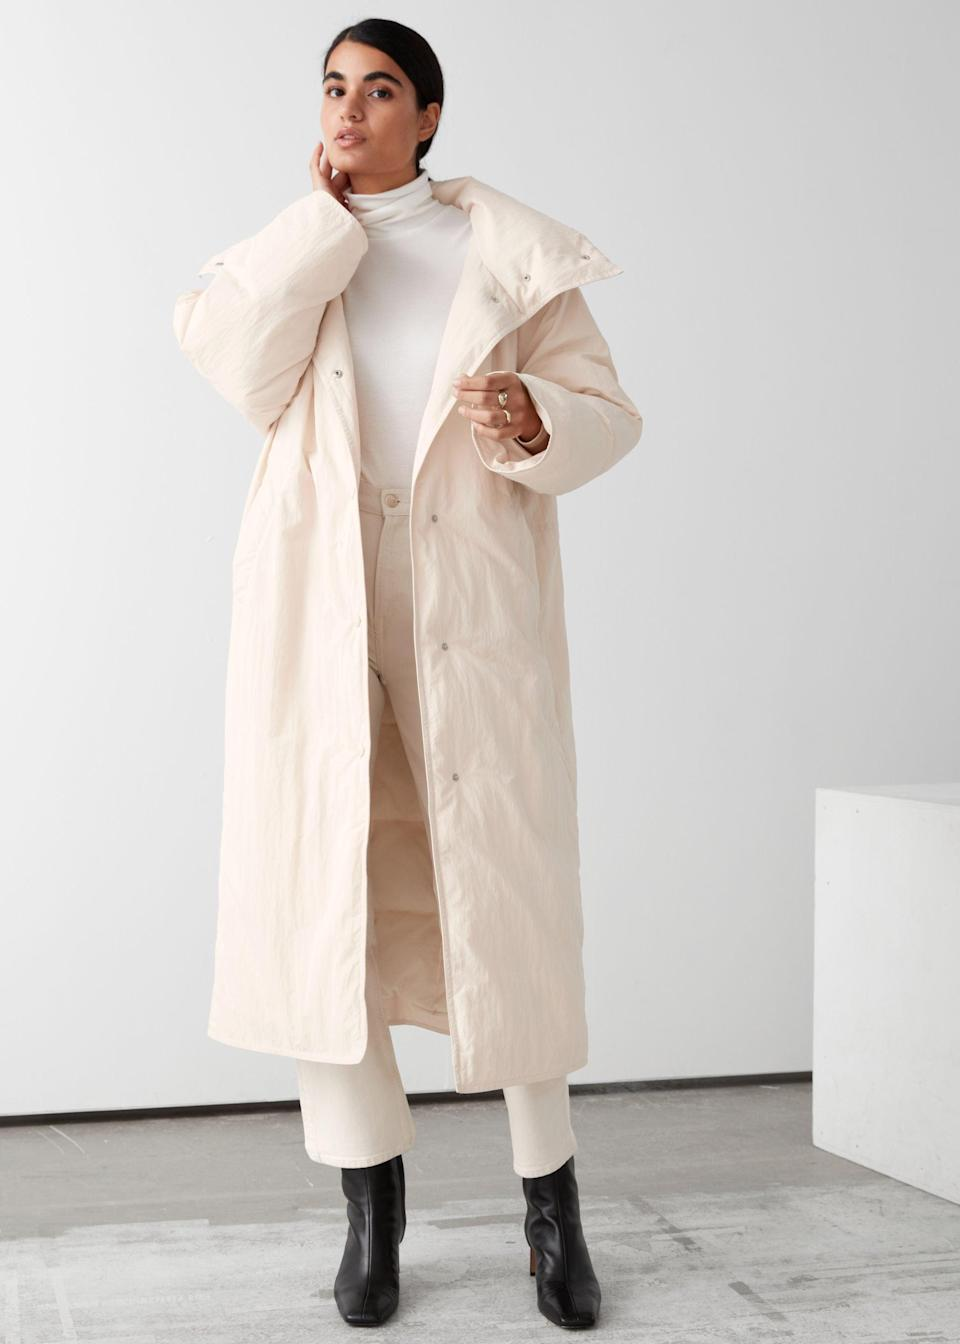 "<br><br><strong>& Other Stories</strong> Oversized Boxy Long Puffer Jacket, $, available at <a href=""https://go.skimresources.com/?id=30283X879131&url=https%3A%2F%2Fwww.stories.com%2Fen_usd%2Fclothing%2Fjackets-coats%2Fjackets%2Fproduct.oversized-boxy-long-puffer-jacket-beige.0891895003.html"" rel=""nofollow noopener"" target=""_blank"" data-ylk=""slk:& Other Stories"" class=""link rapid-noclick-resp"">& Other Stories</a>"